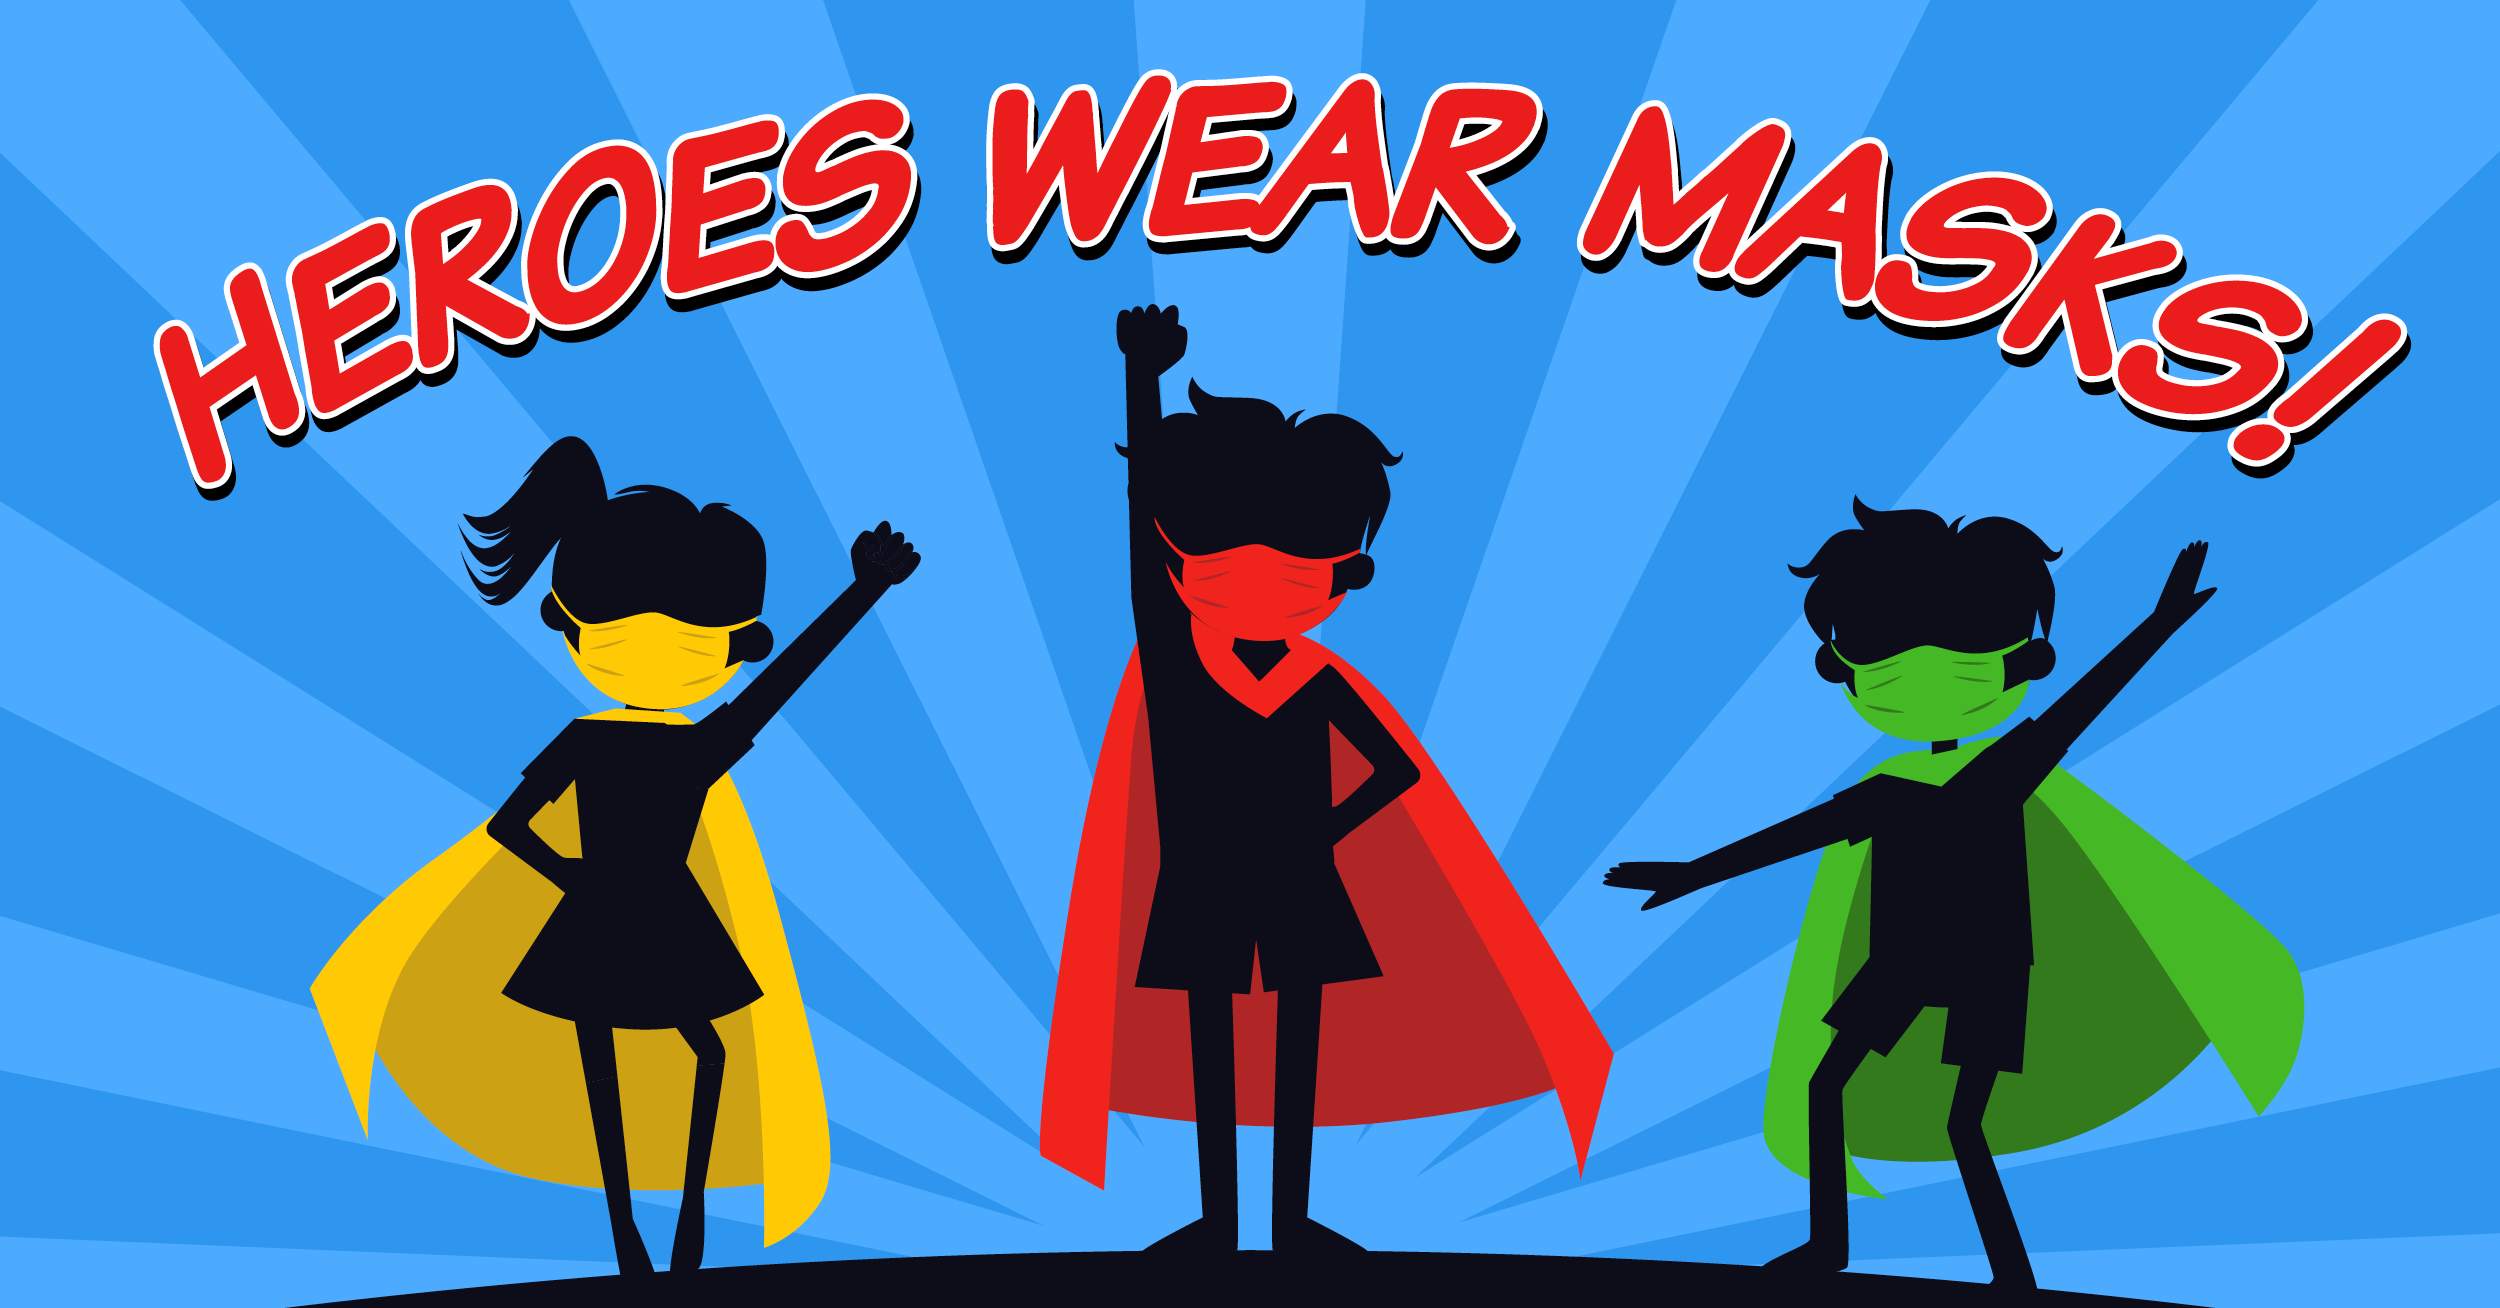 Three student silloettes against a blue background, wearing capes and color coordinated masks, with words Heroes wear masks above in red letters